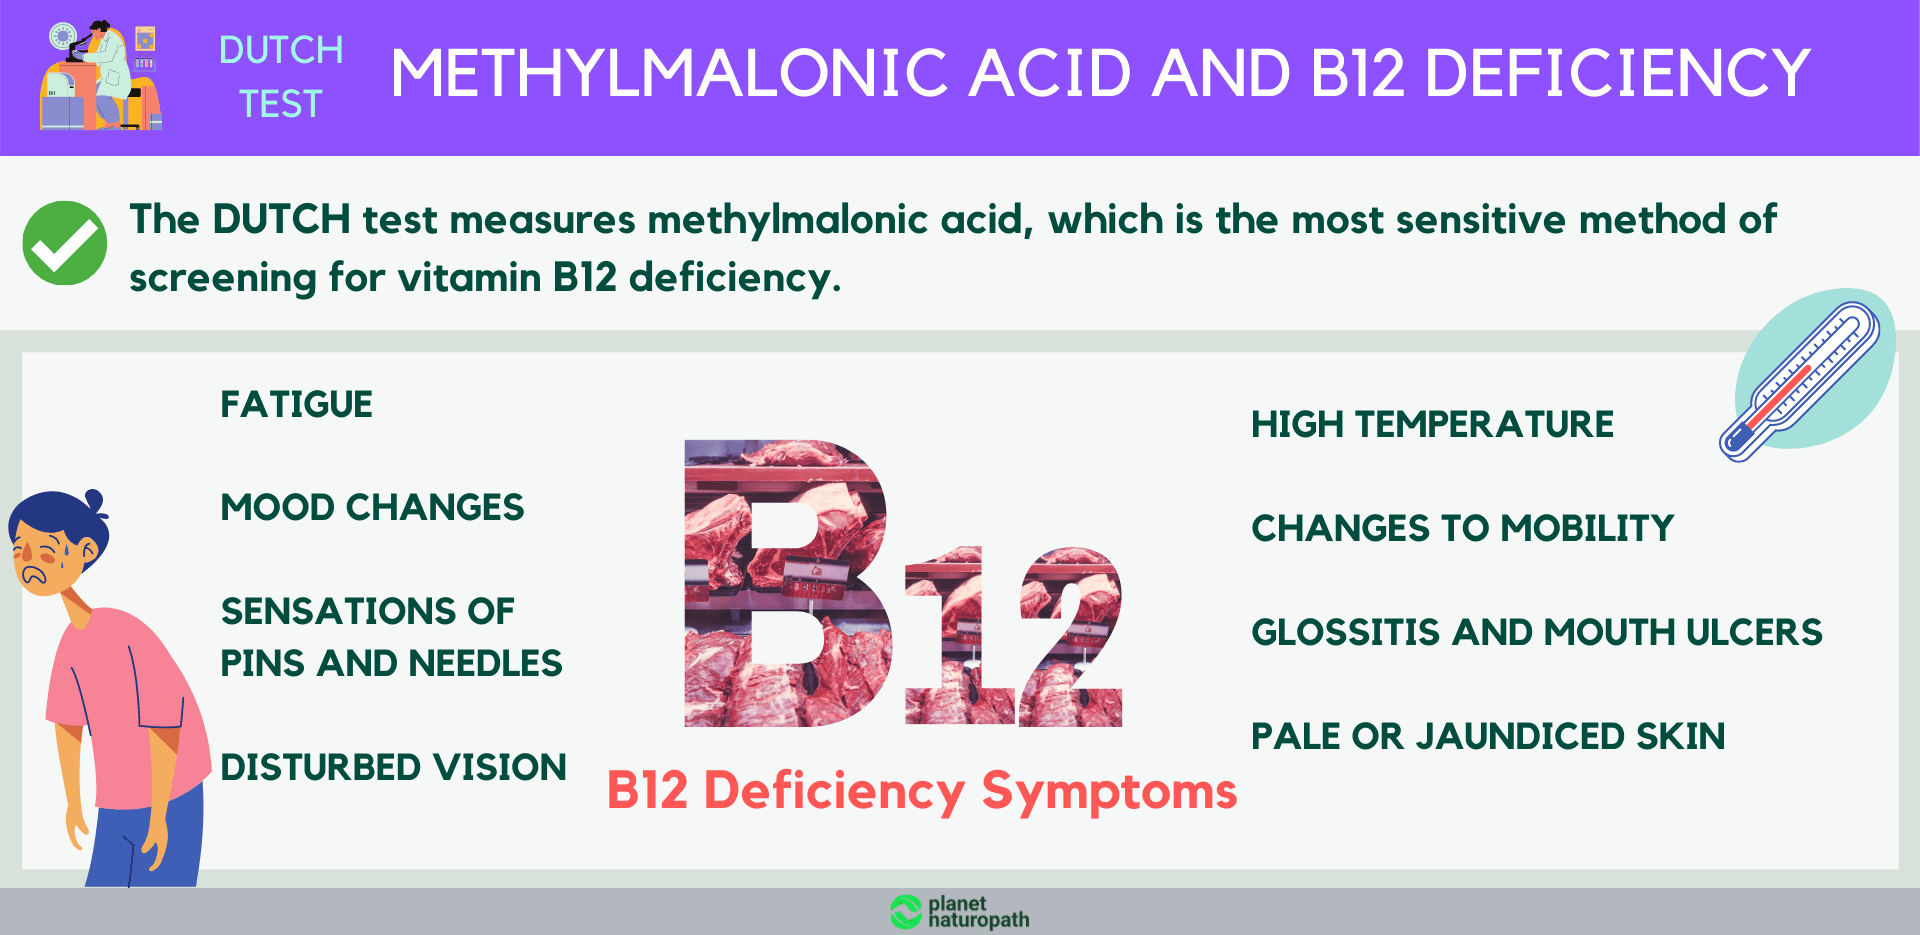 Methylmalonic-acid-and-B12-deficiency